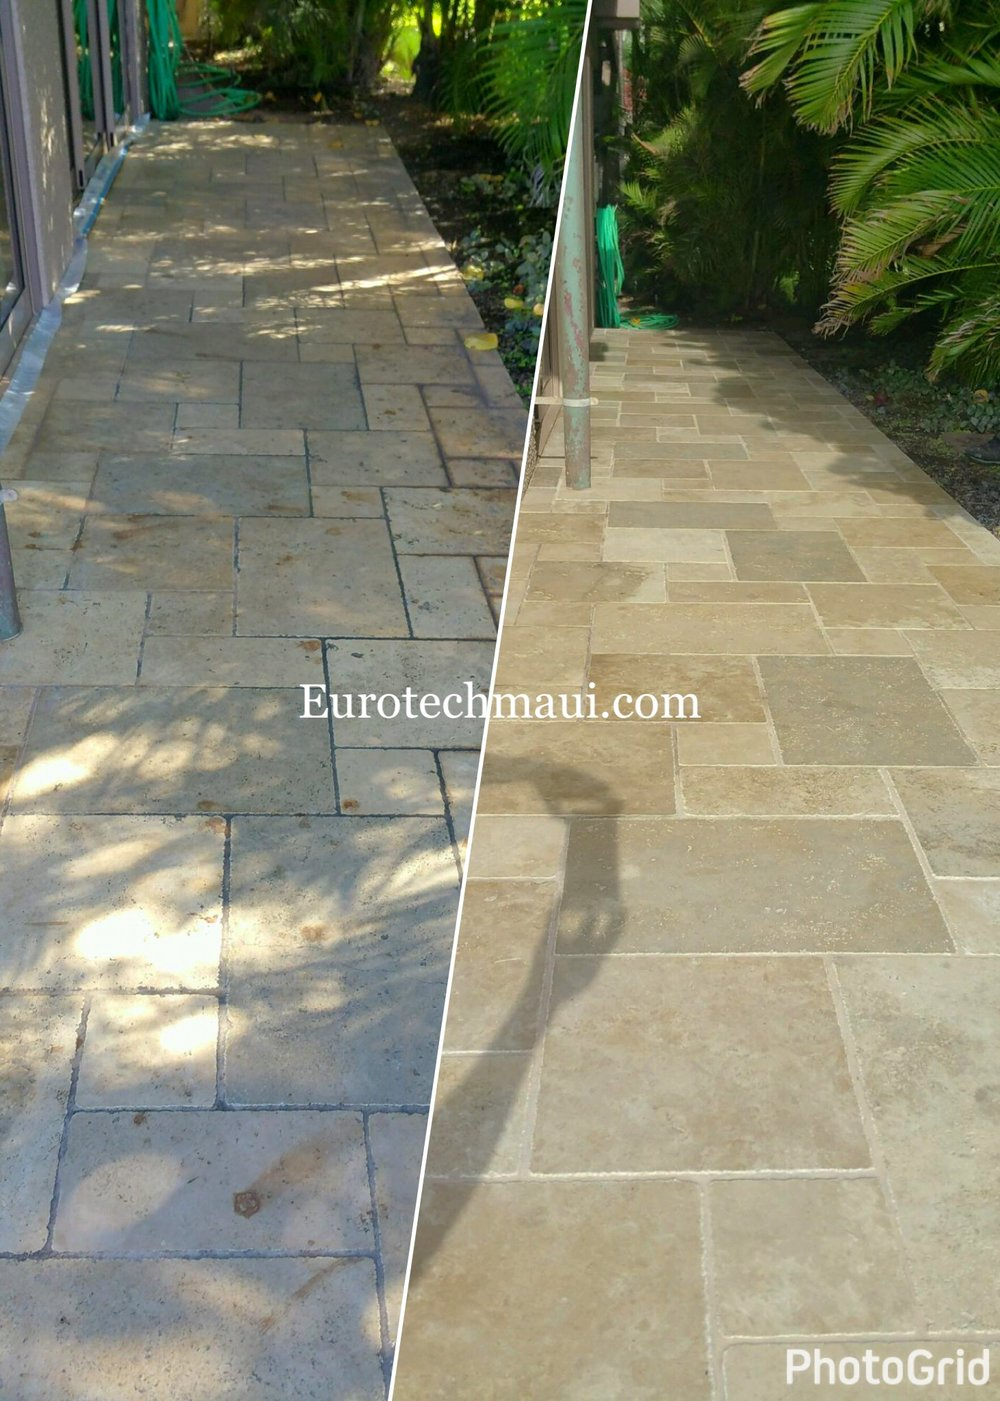 TRAVERTINE CLEANING IN WAILEA, MAUI